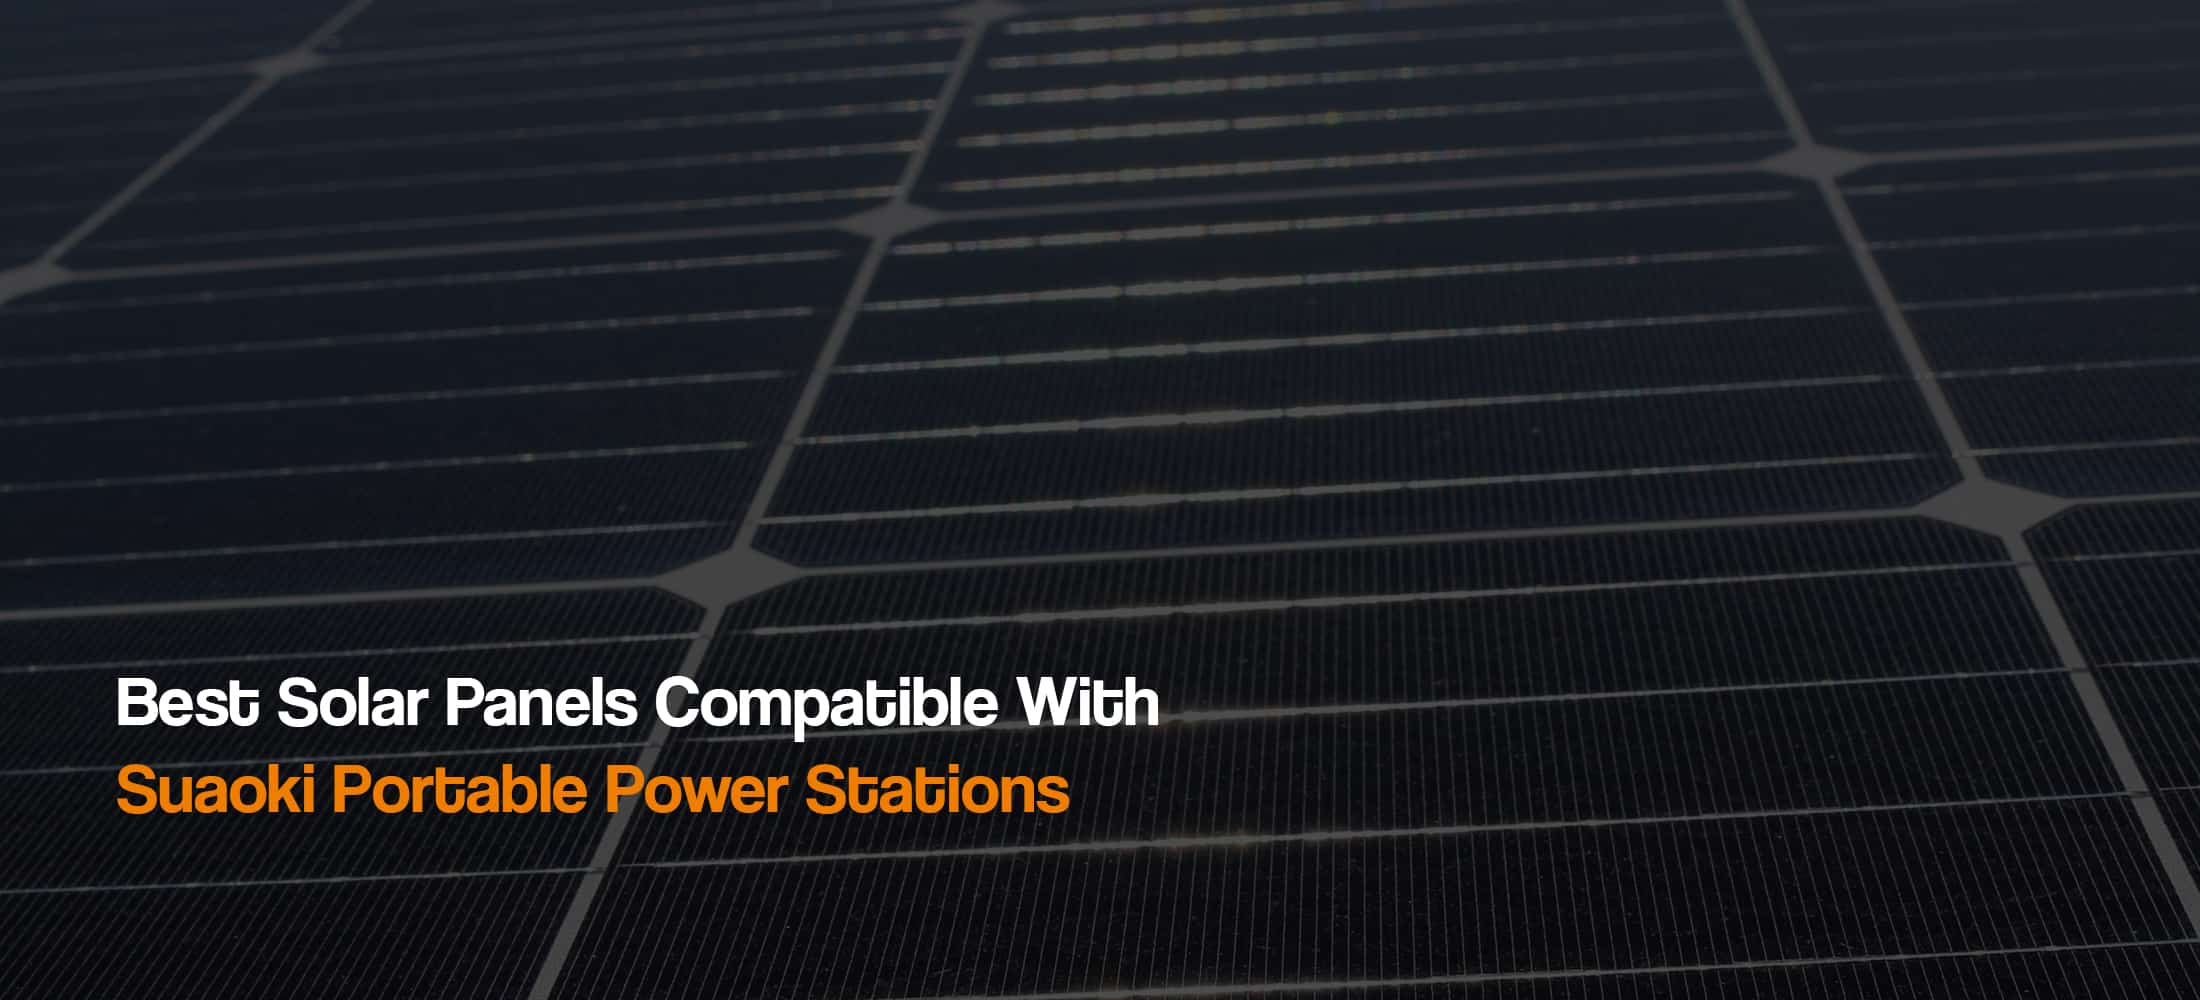 best-solar-panels-compatible-with-suaoki-portable-solar-camping-generators-power-stations-the-solar-addict